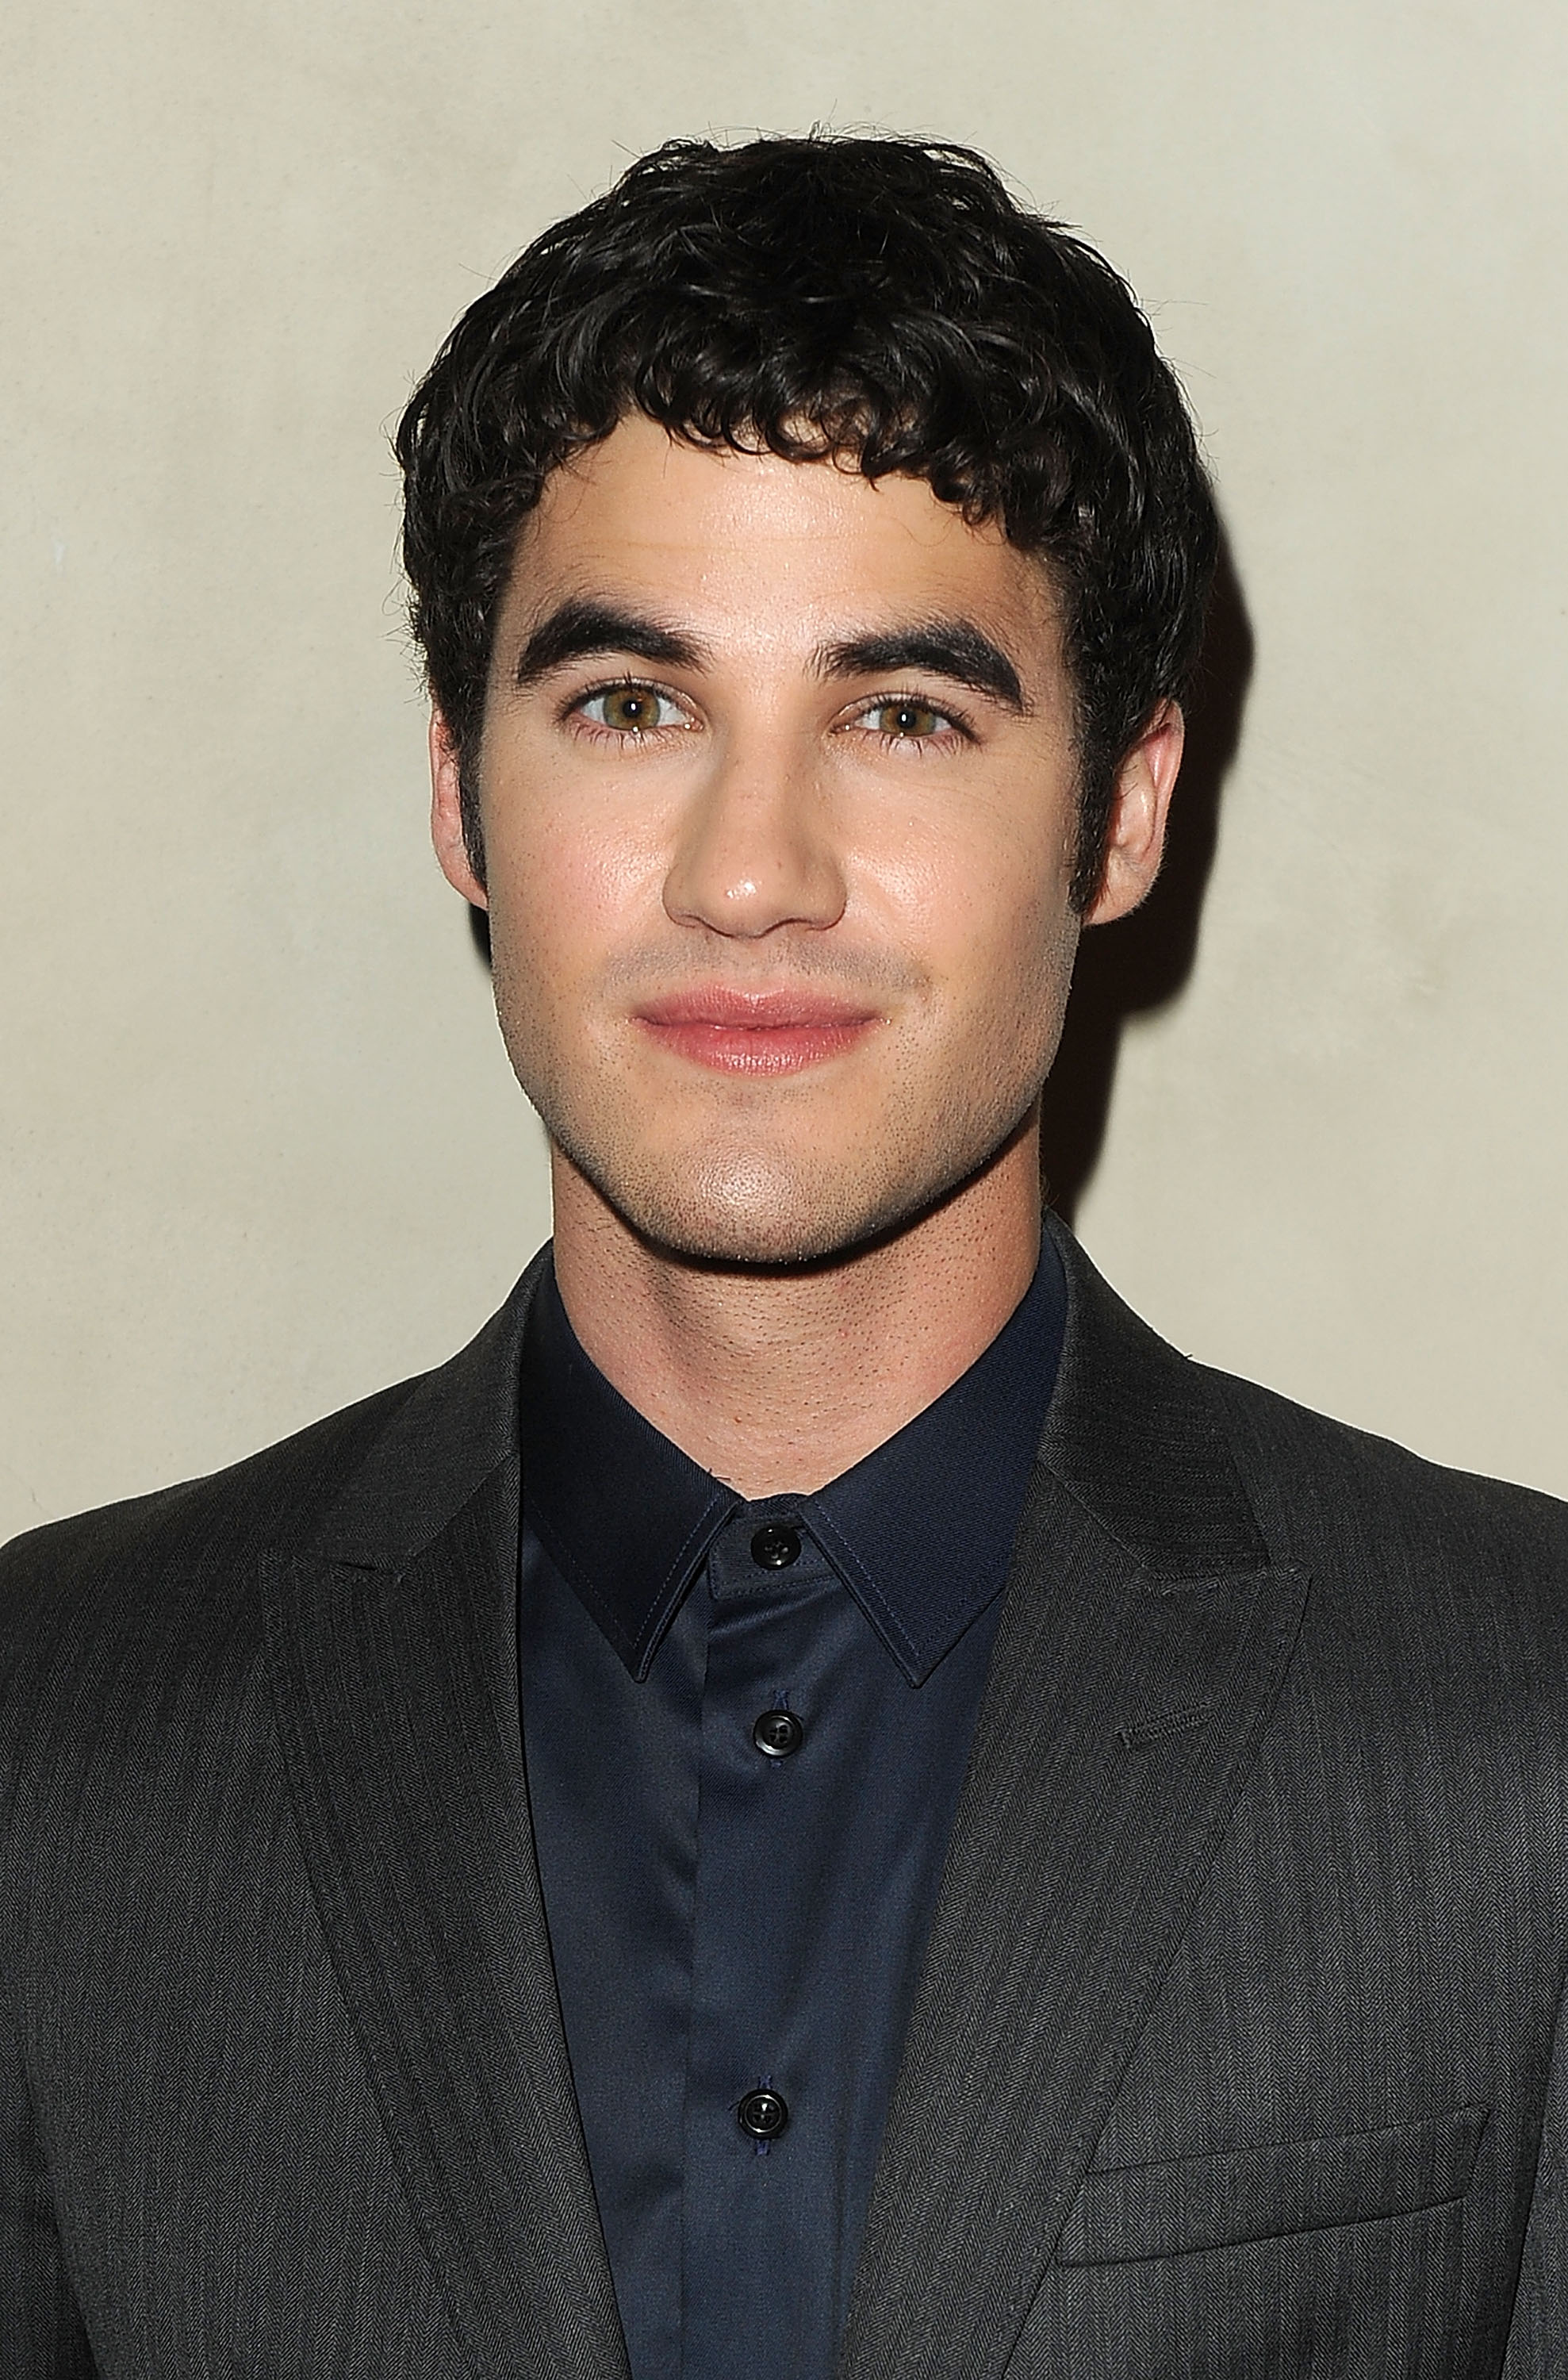 Darren Criss joined his Glee castmates at a private dinner in LA.